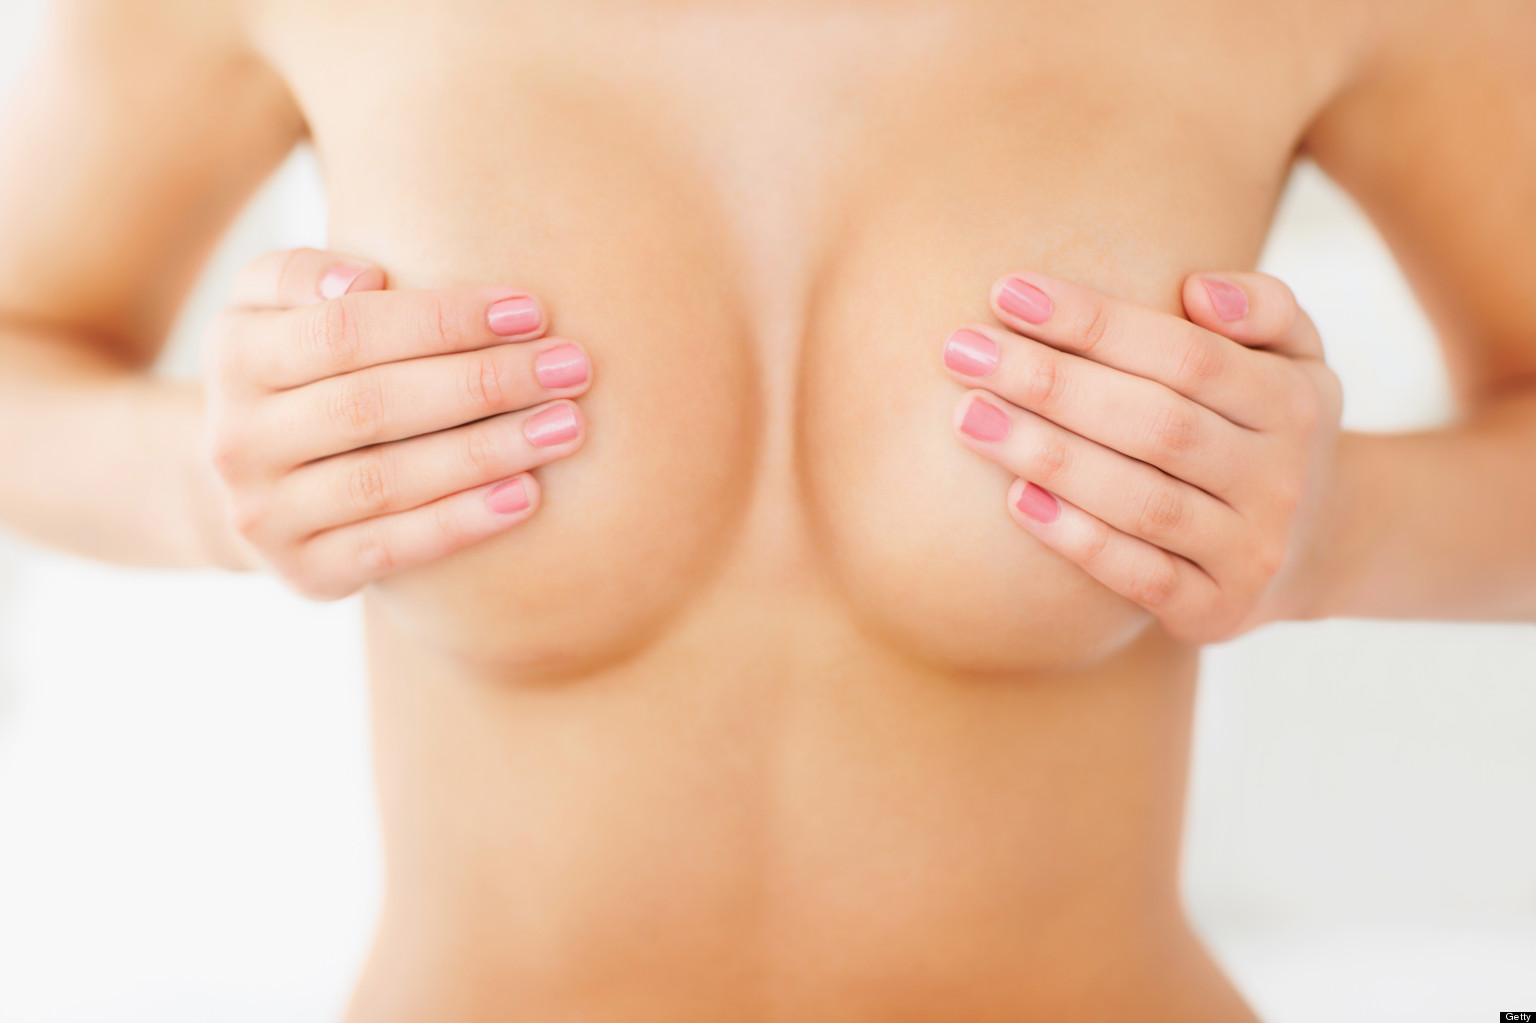 Does breast message decrease aging